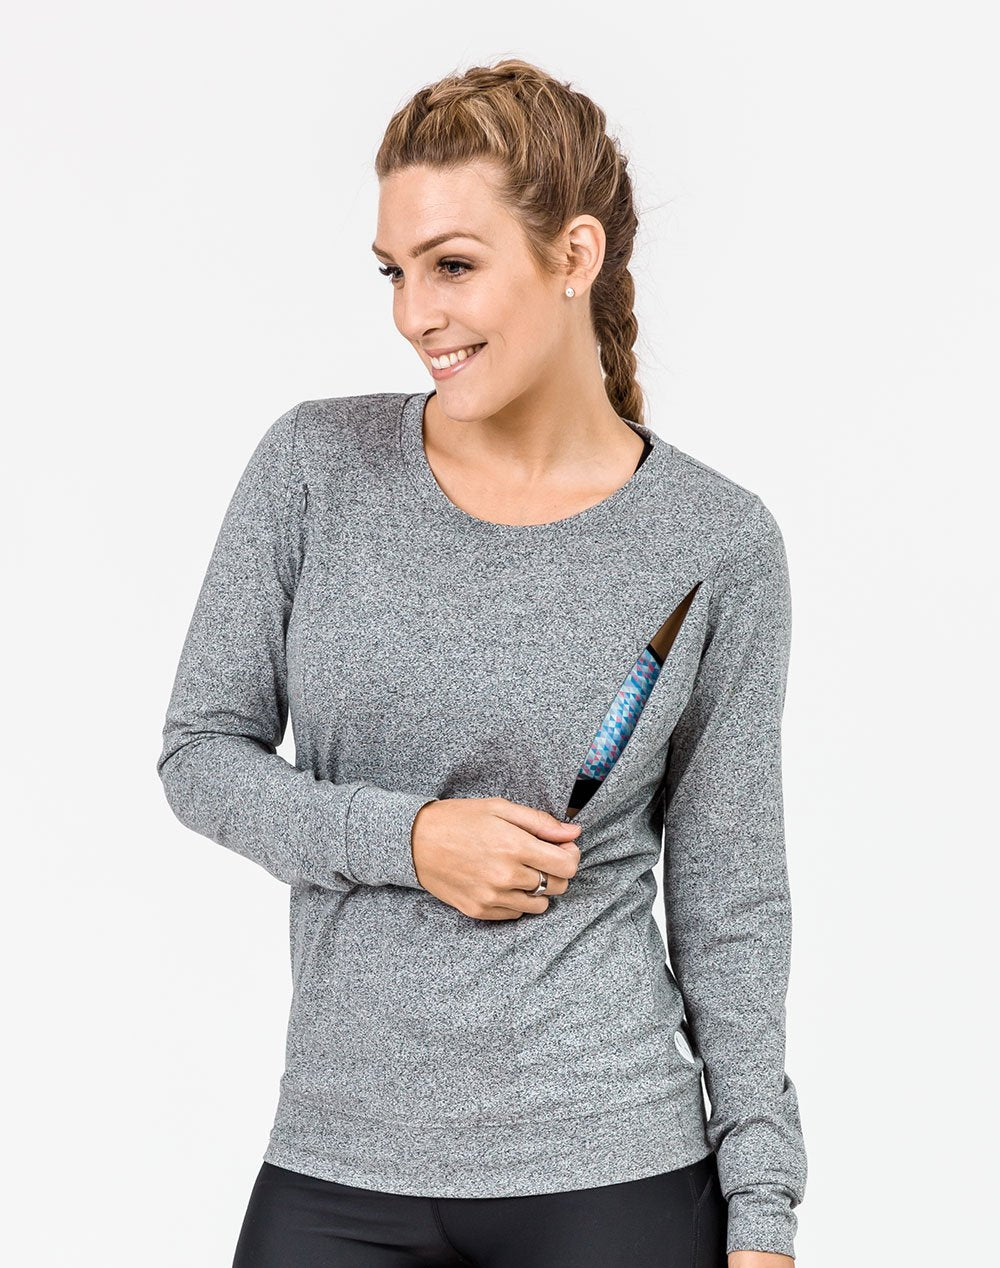 active mom wearing a gray crew neck maternity top with invisible zips unzipped to breastfeed